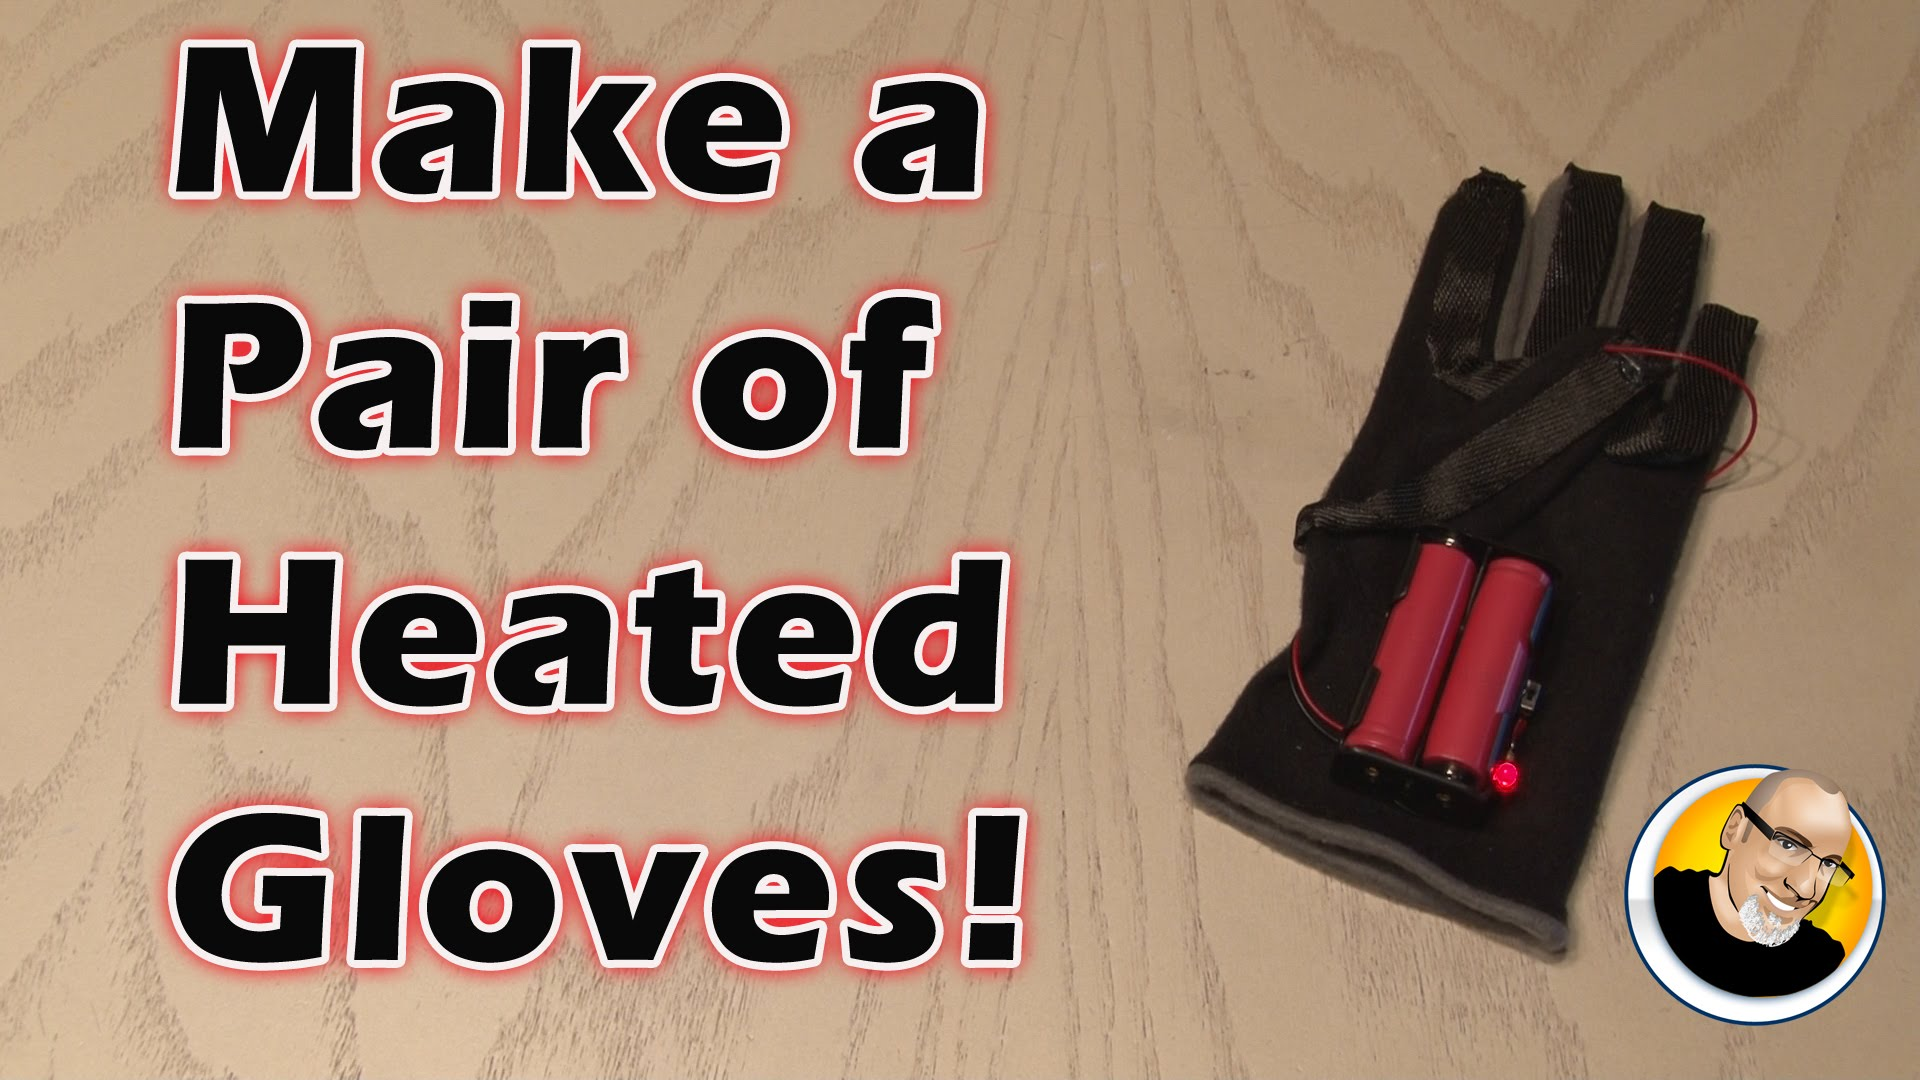 Make a Pair of Heated Gloves!